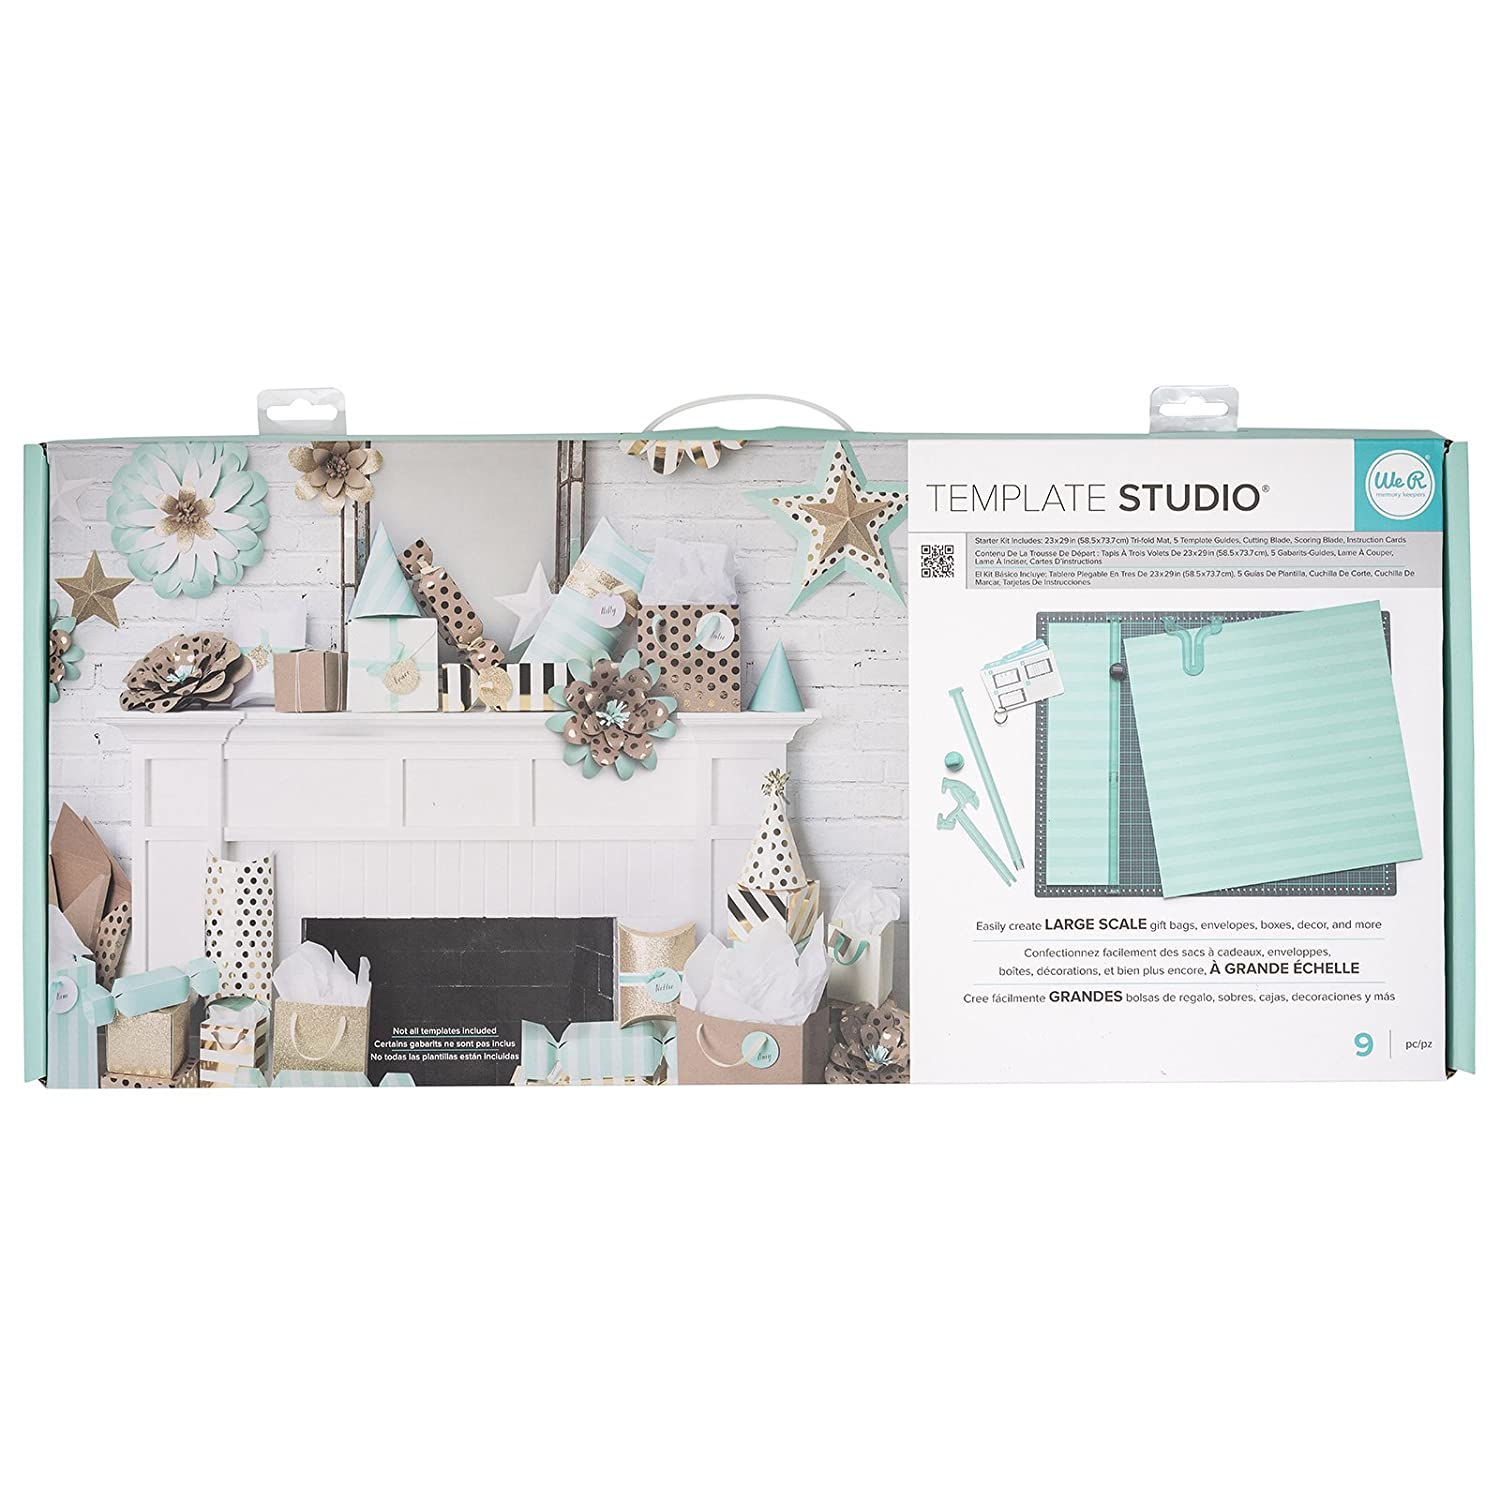 Template Studio Starter Kit by We R Memory Keepers | Includes 23 x 29-inch tri-fold mat, 5 template guides, cutting blade, scoring blade and ...